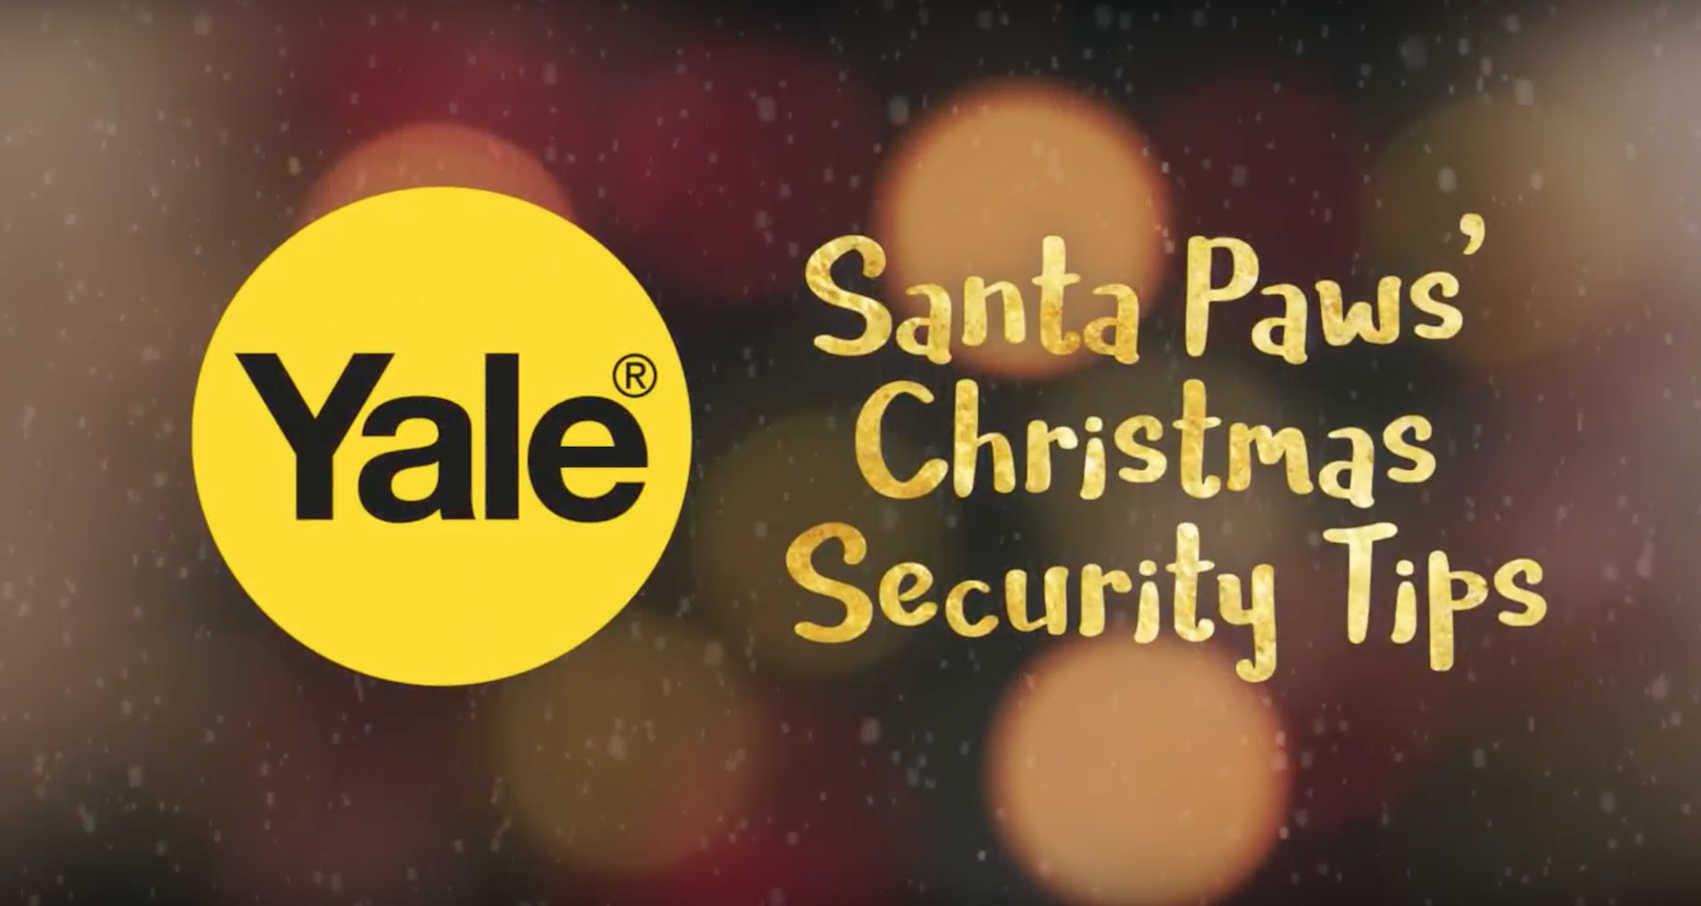 Get Christmas all wrapped up with top security tips from Yale!